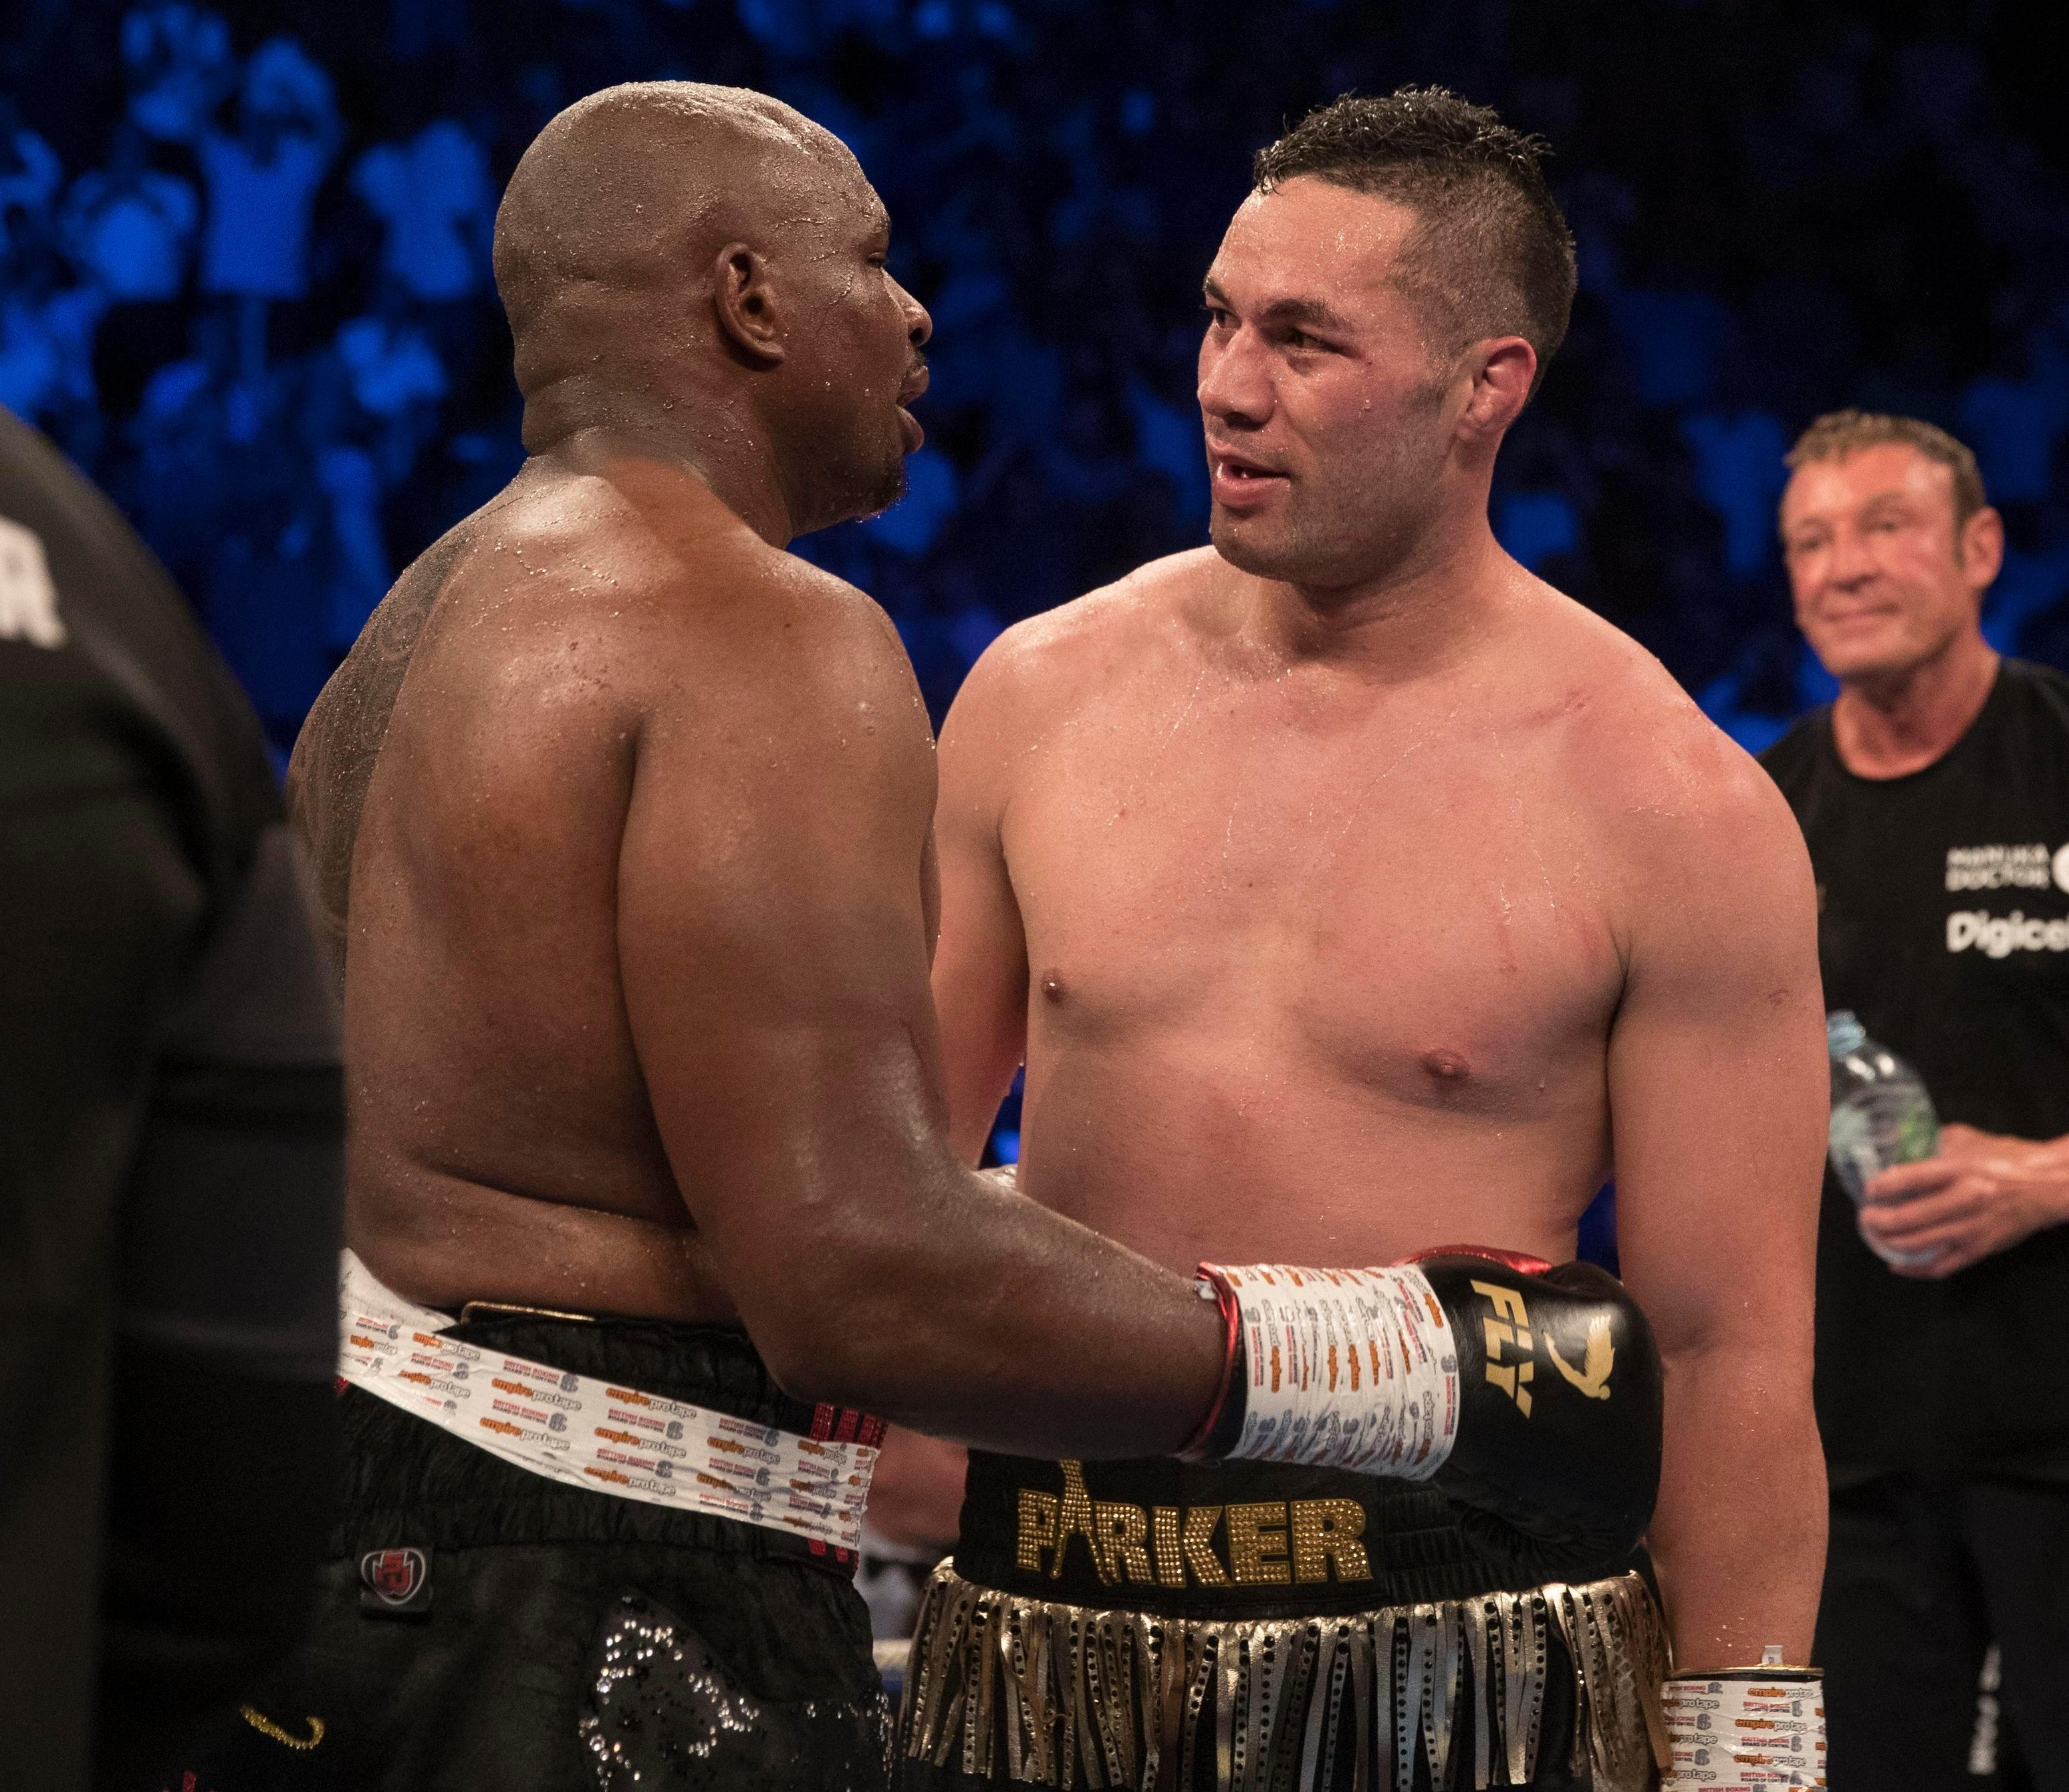 Joseph Parker is set to appeal his points loss to Dillian Whyte